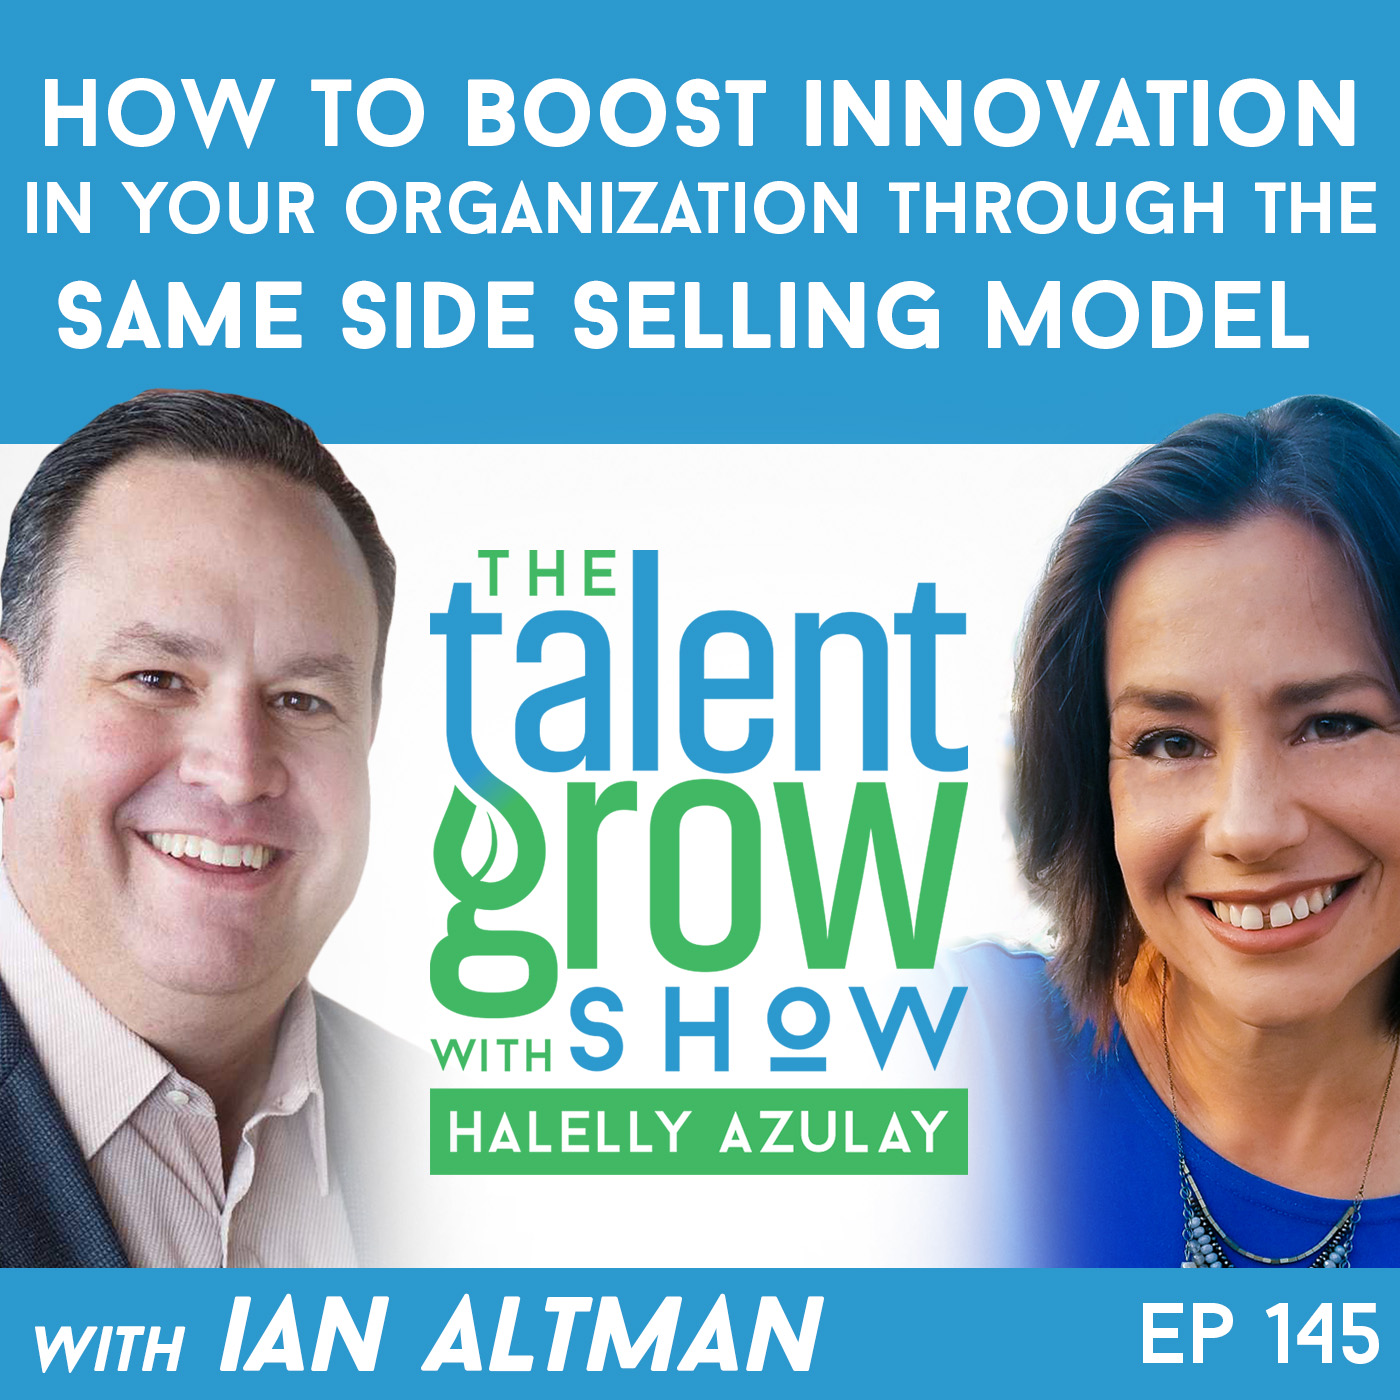 145: How to Boost Innovation in Your Organization through the Same Side Selling Model with Ian Altman